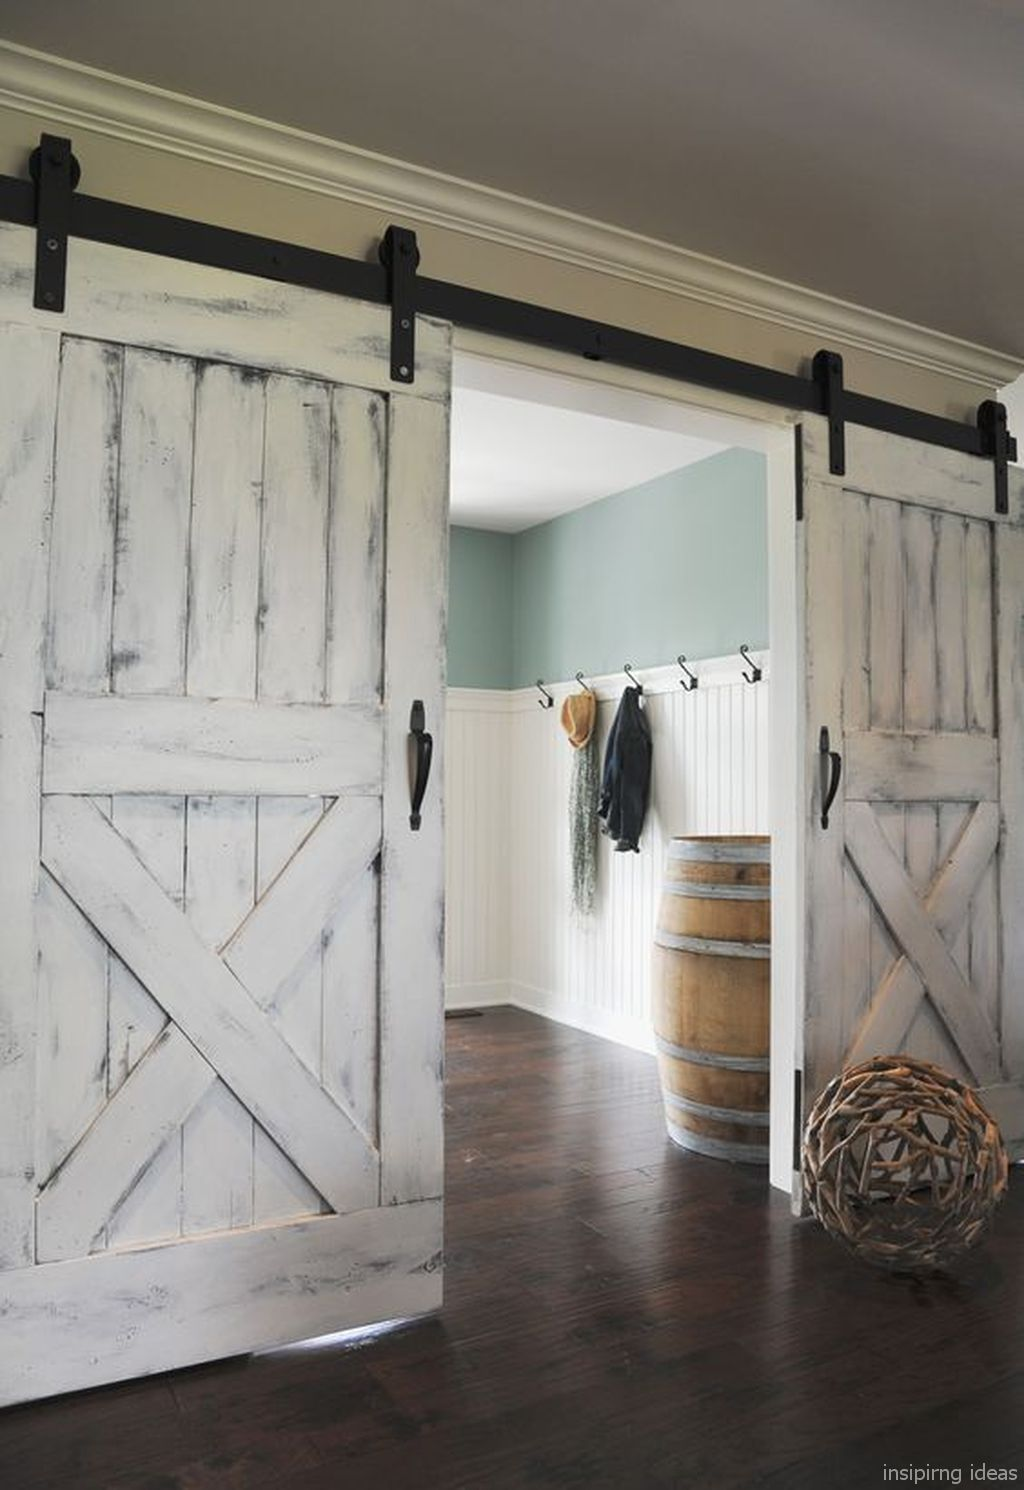 96 Rustic Country Home Decor Ideas   Pinterest   House